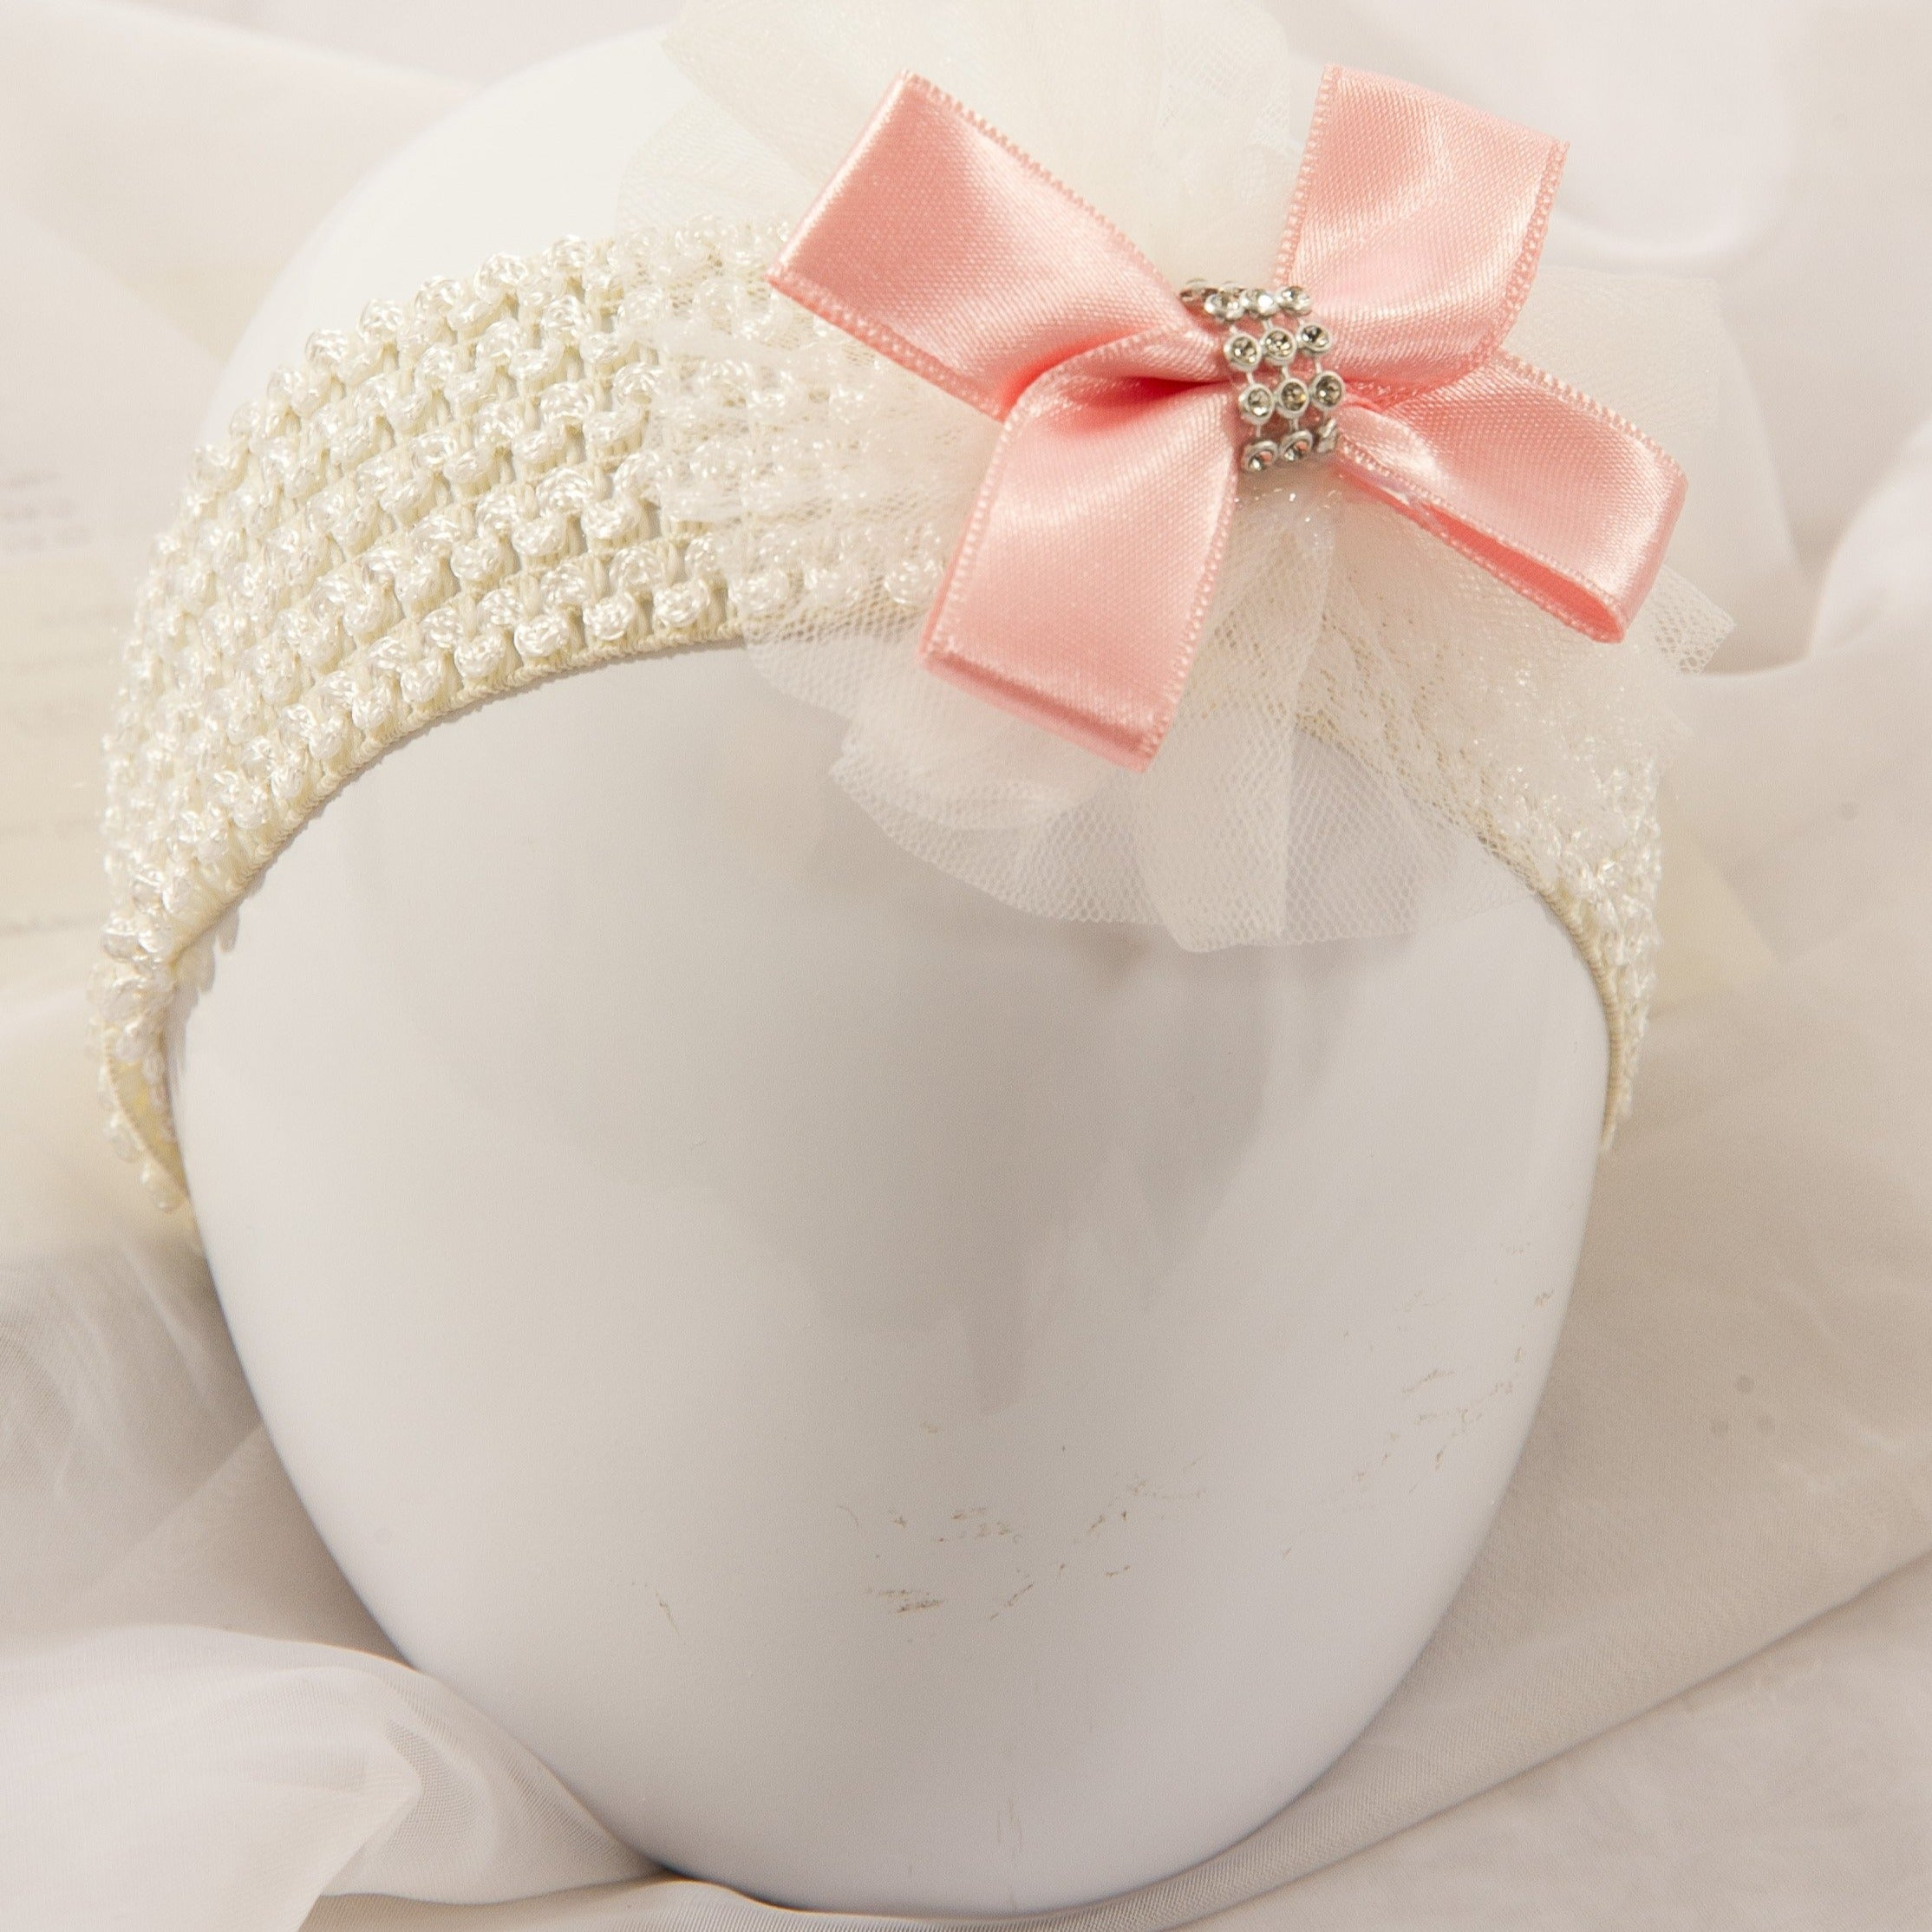 Single Tutu Hair band - Pink Bow Diamante